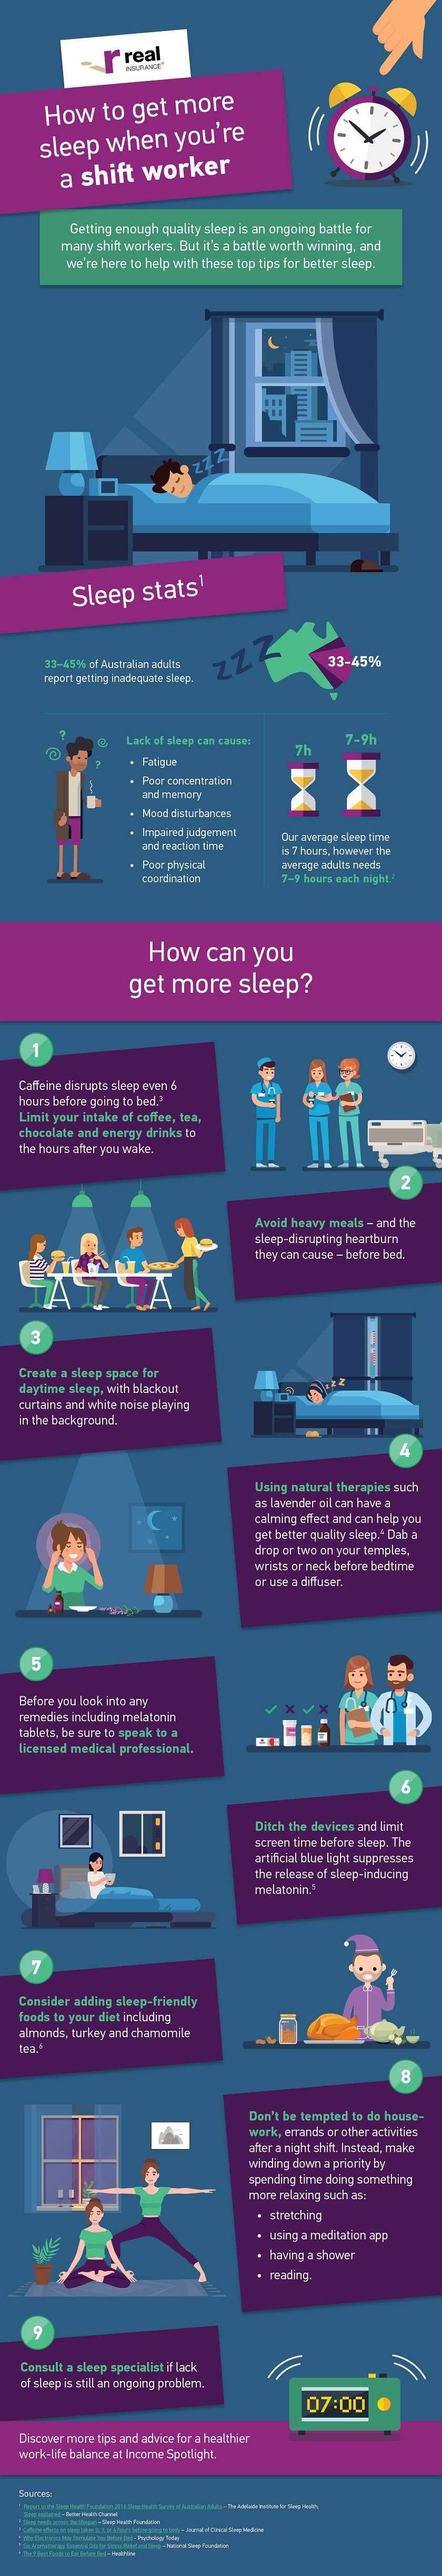 shift workers guide to healthy eating infrographic